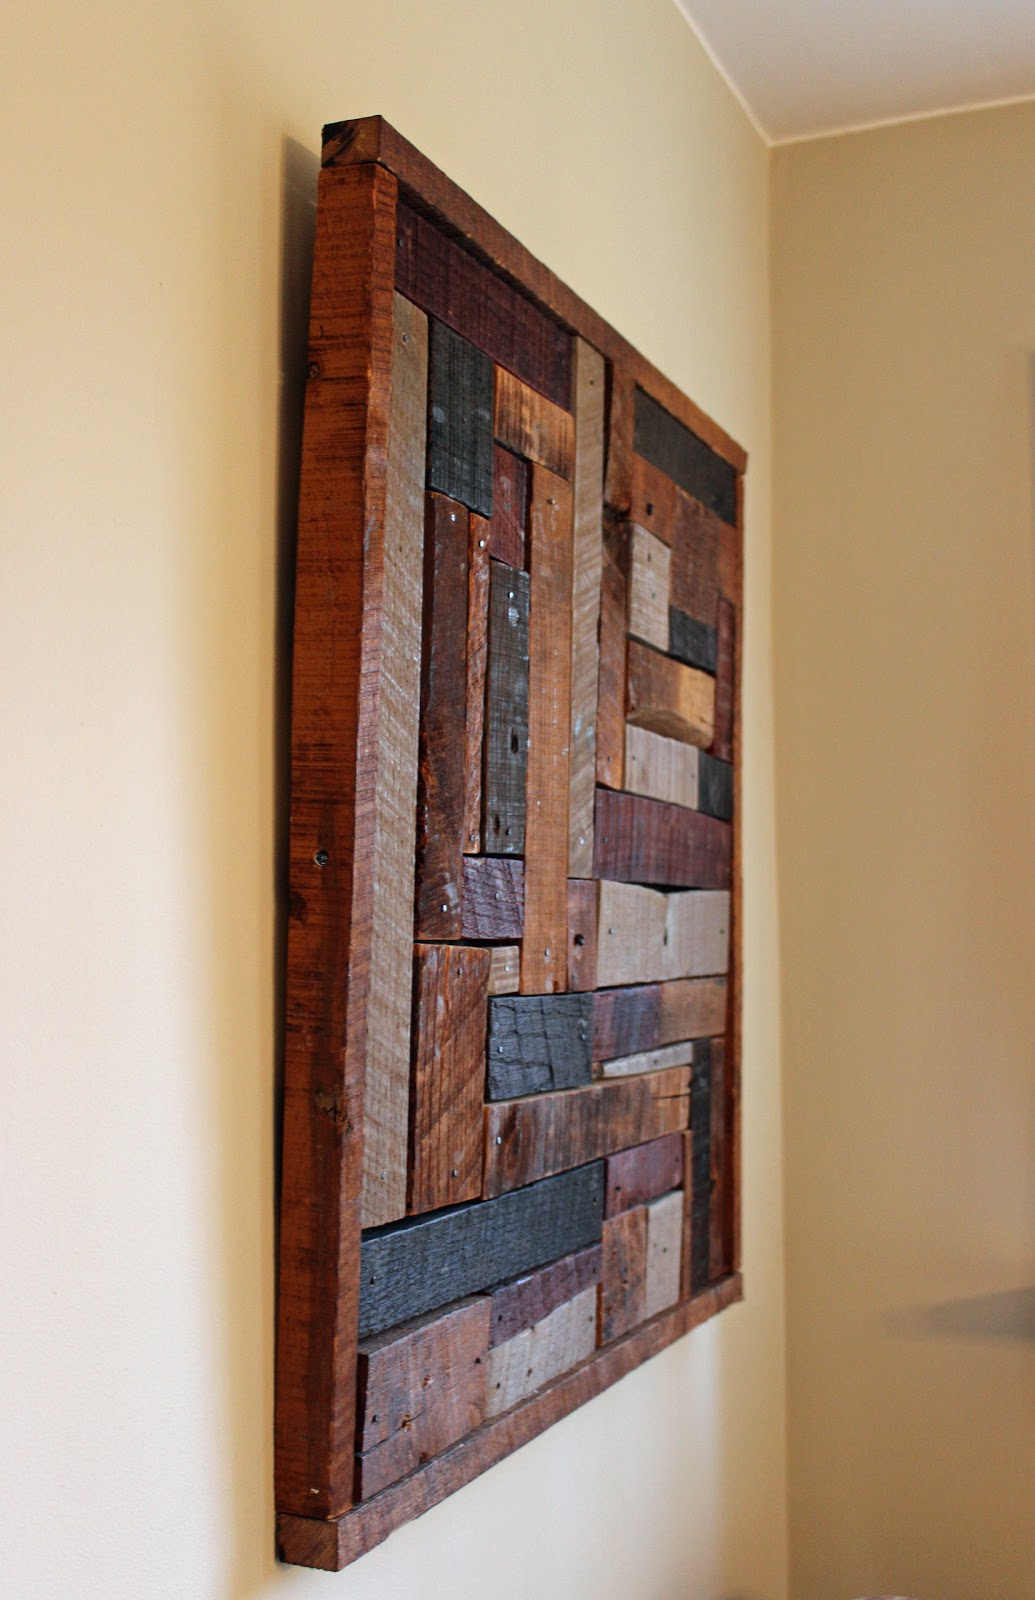 citydogcountrydoghome: Reclaimed Wood Art in My Country Dining Room